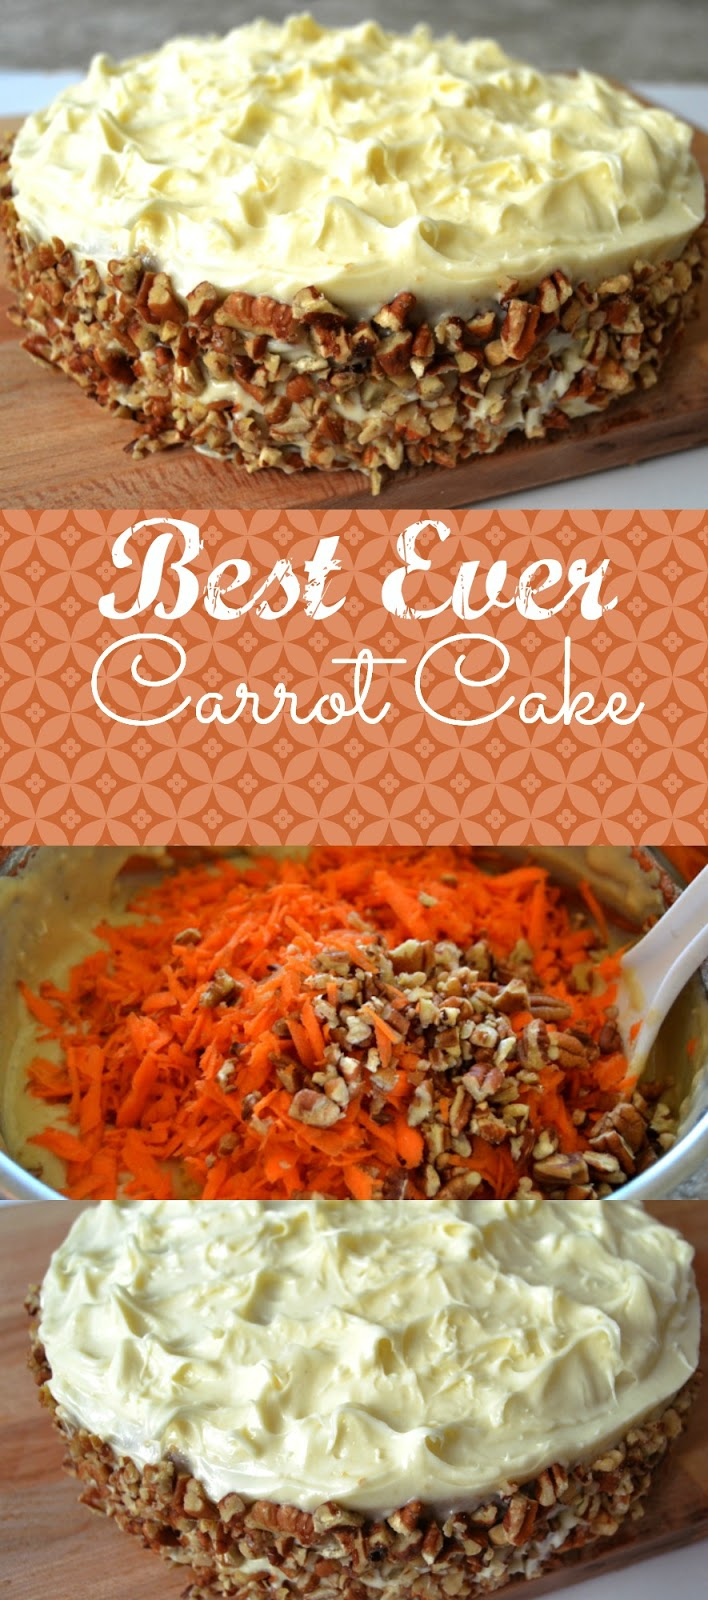 Best Carrot Cake In Marin County